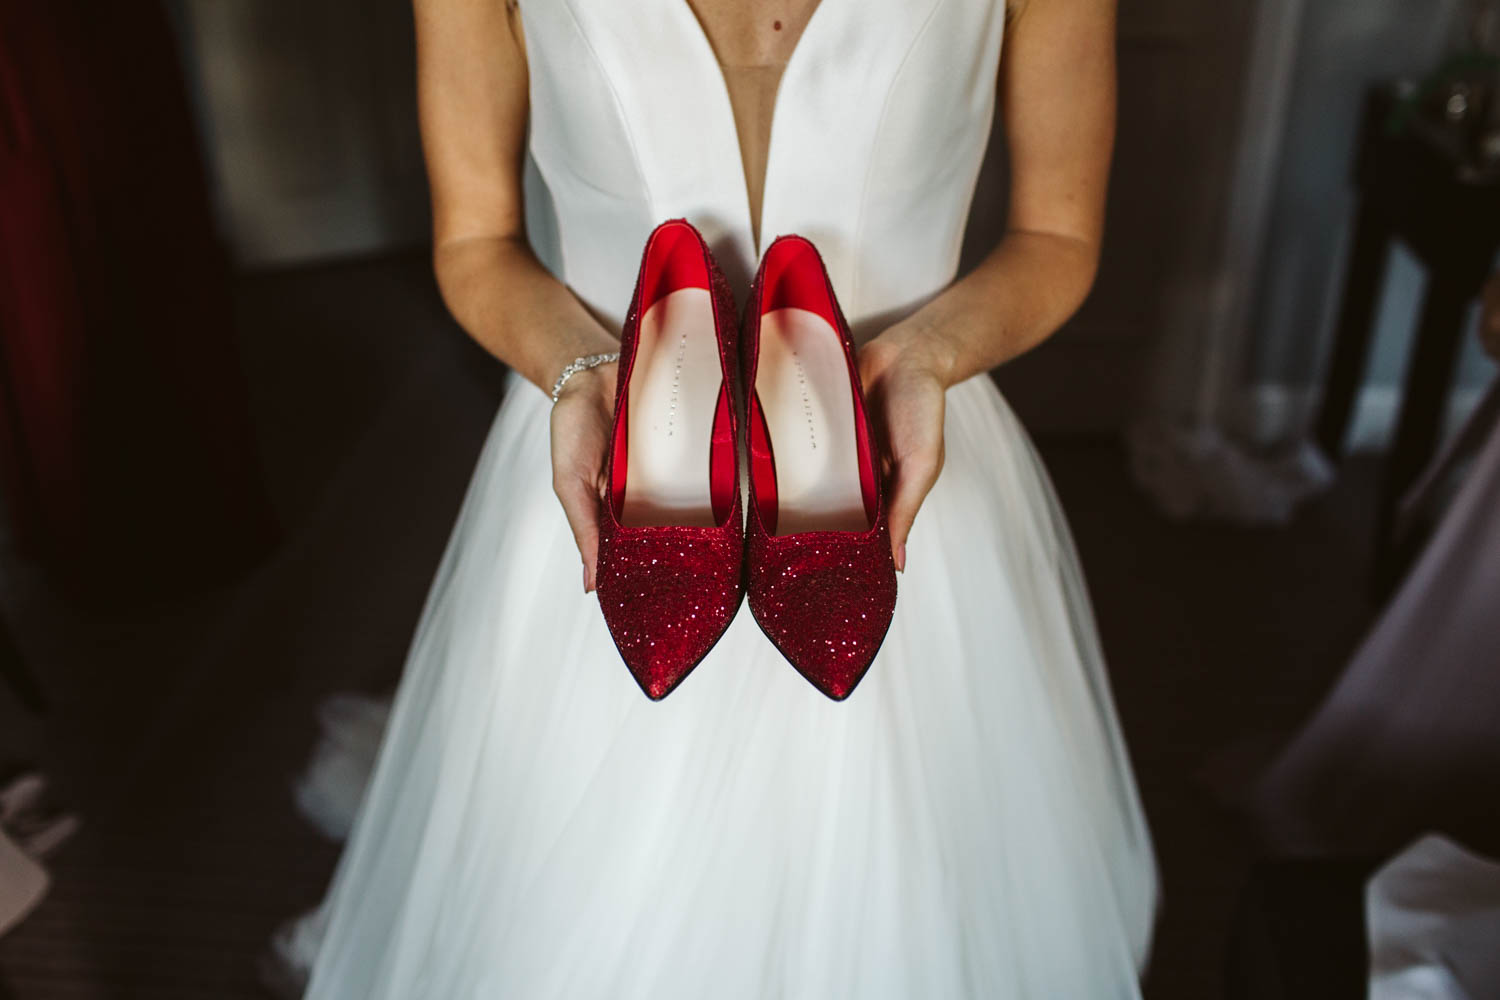 the bride showing off red sparkly shoes